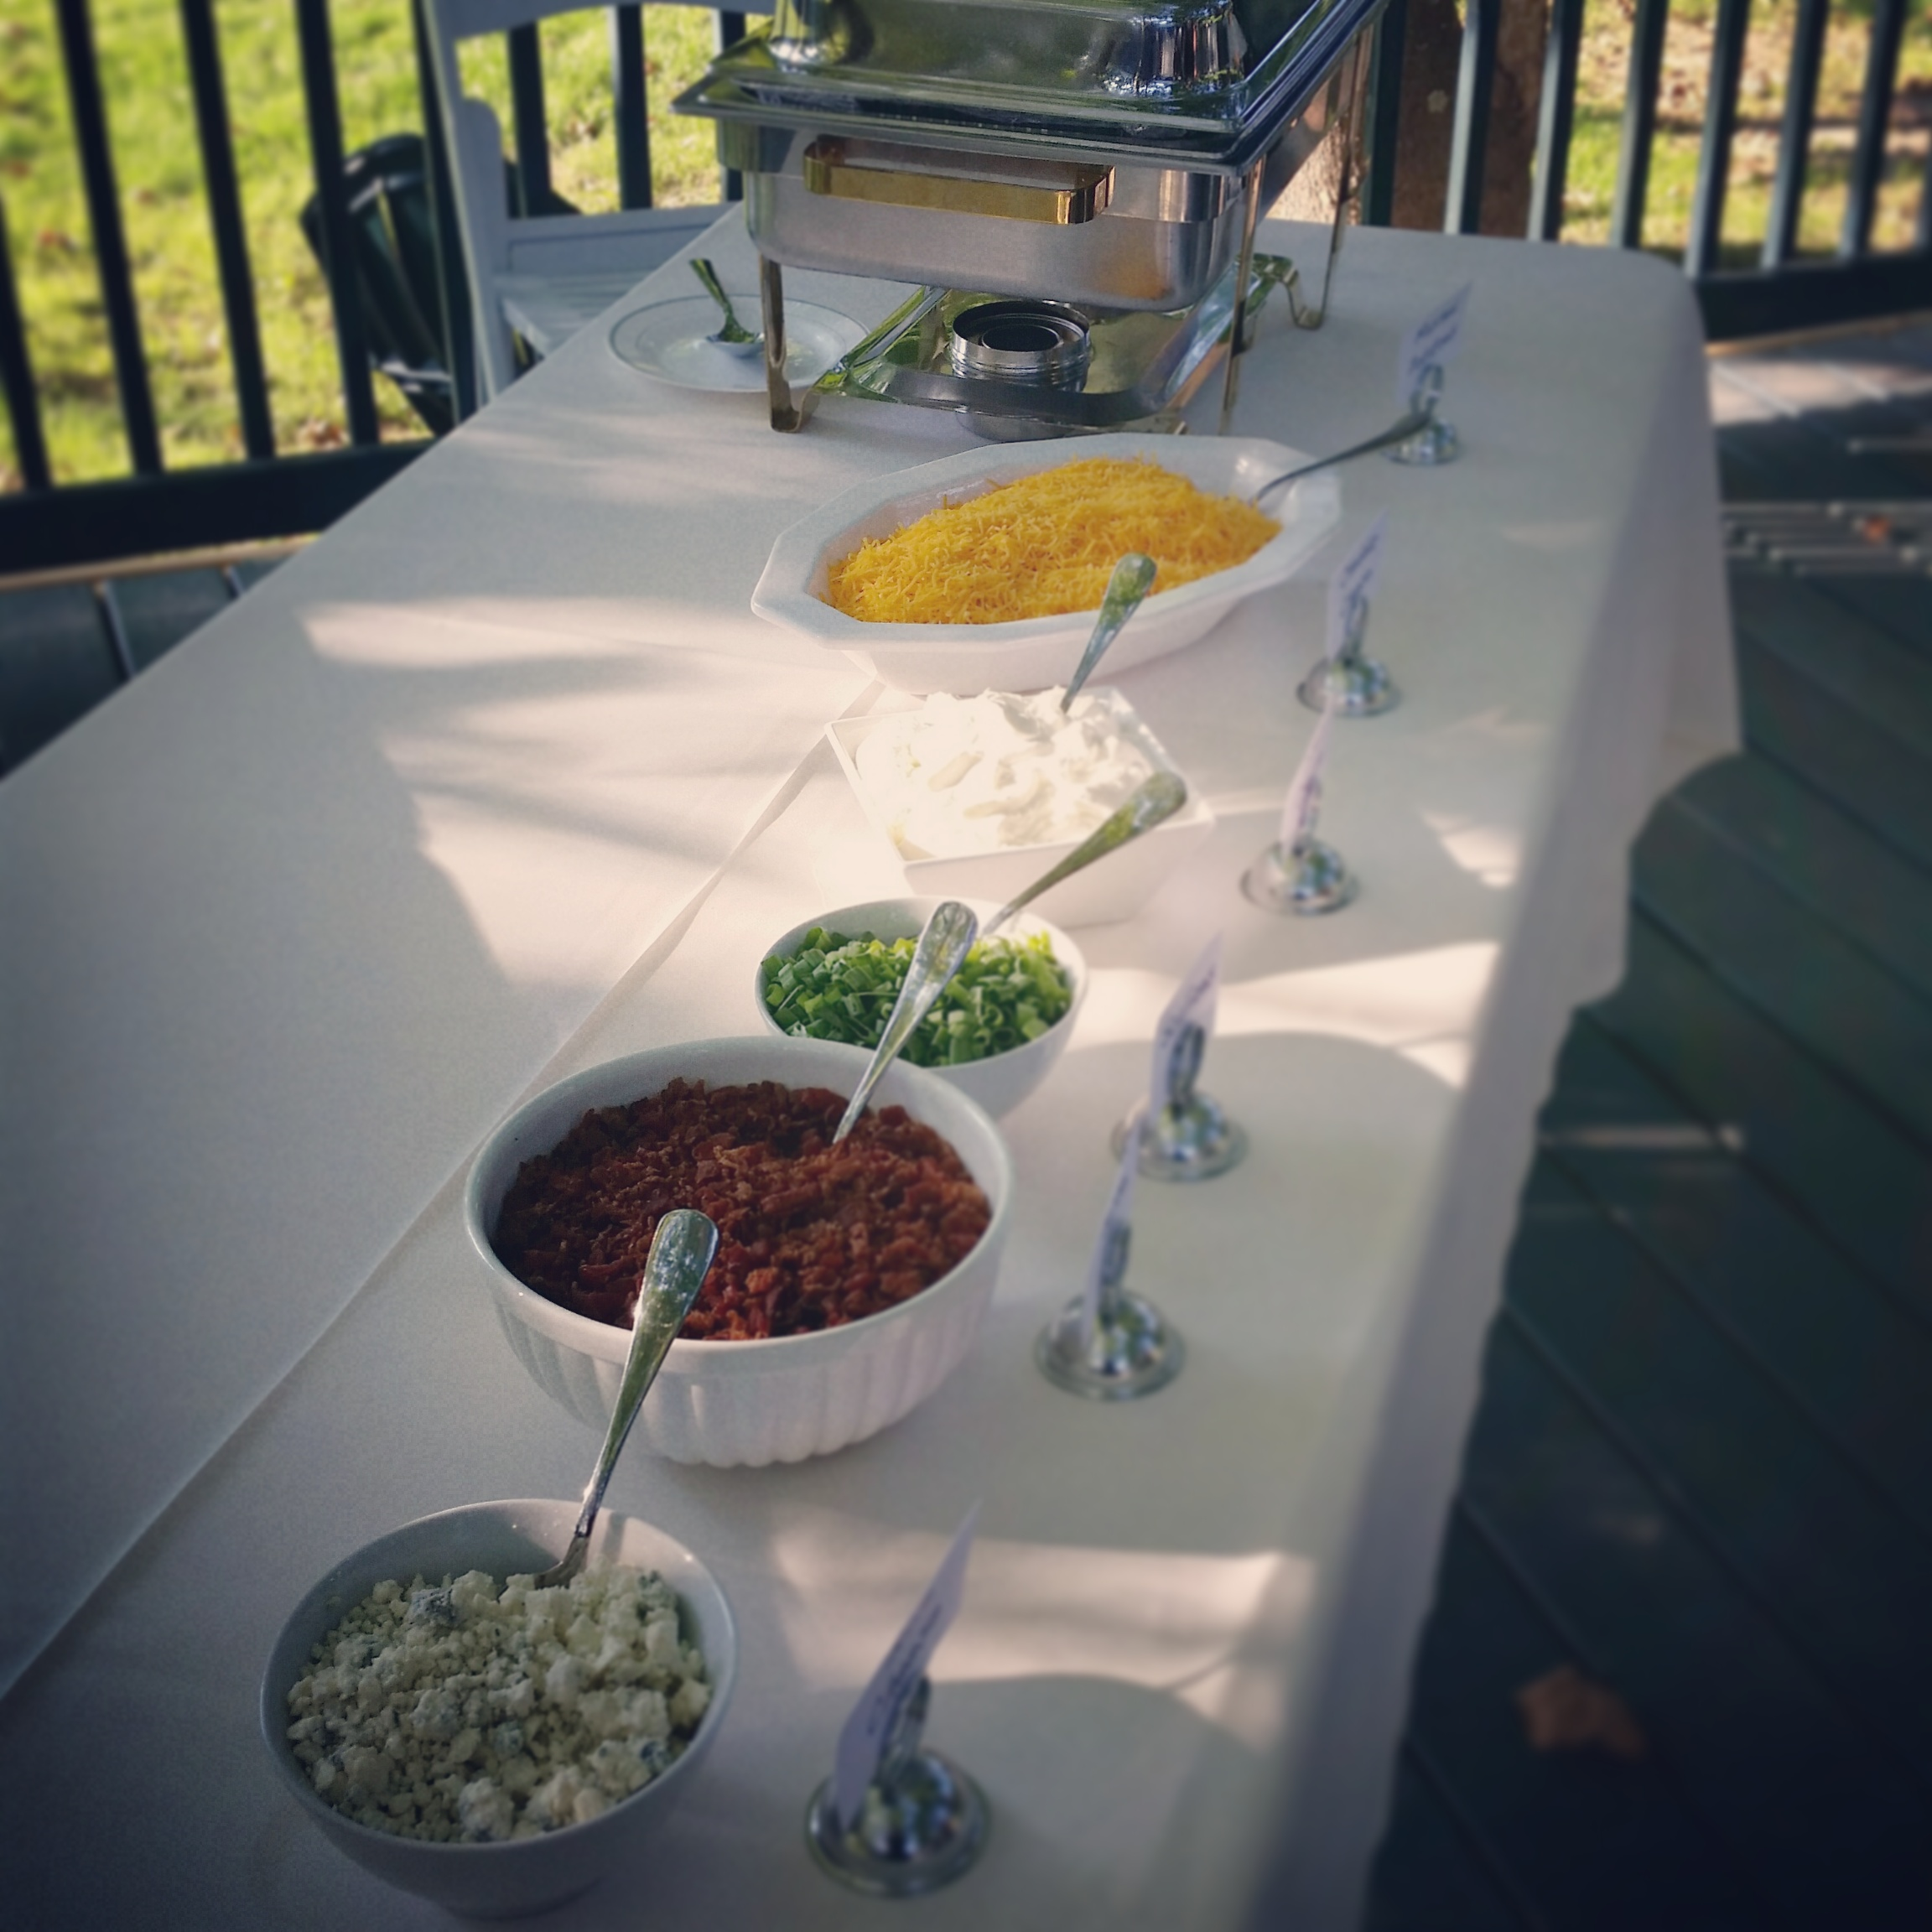 Mashed Potato Bar with Sour Cream, Cheddar, Bacon, Blue Cheese, Scallions and Butter toppings